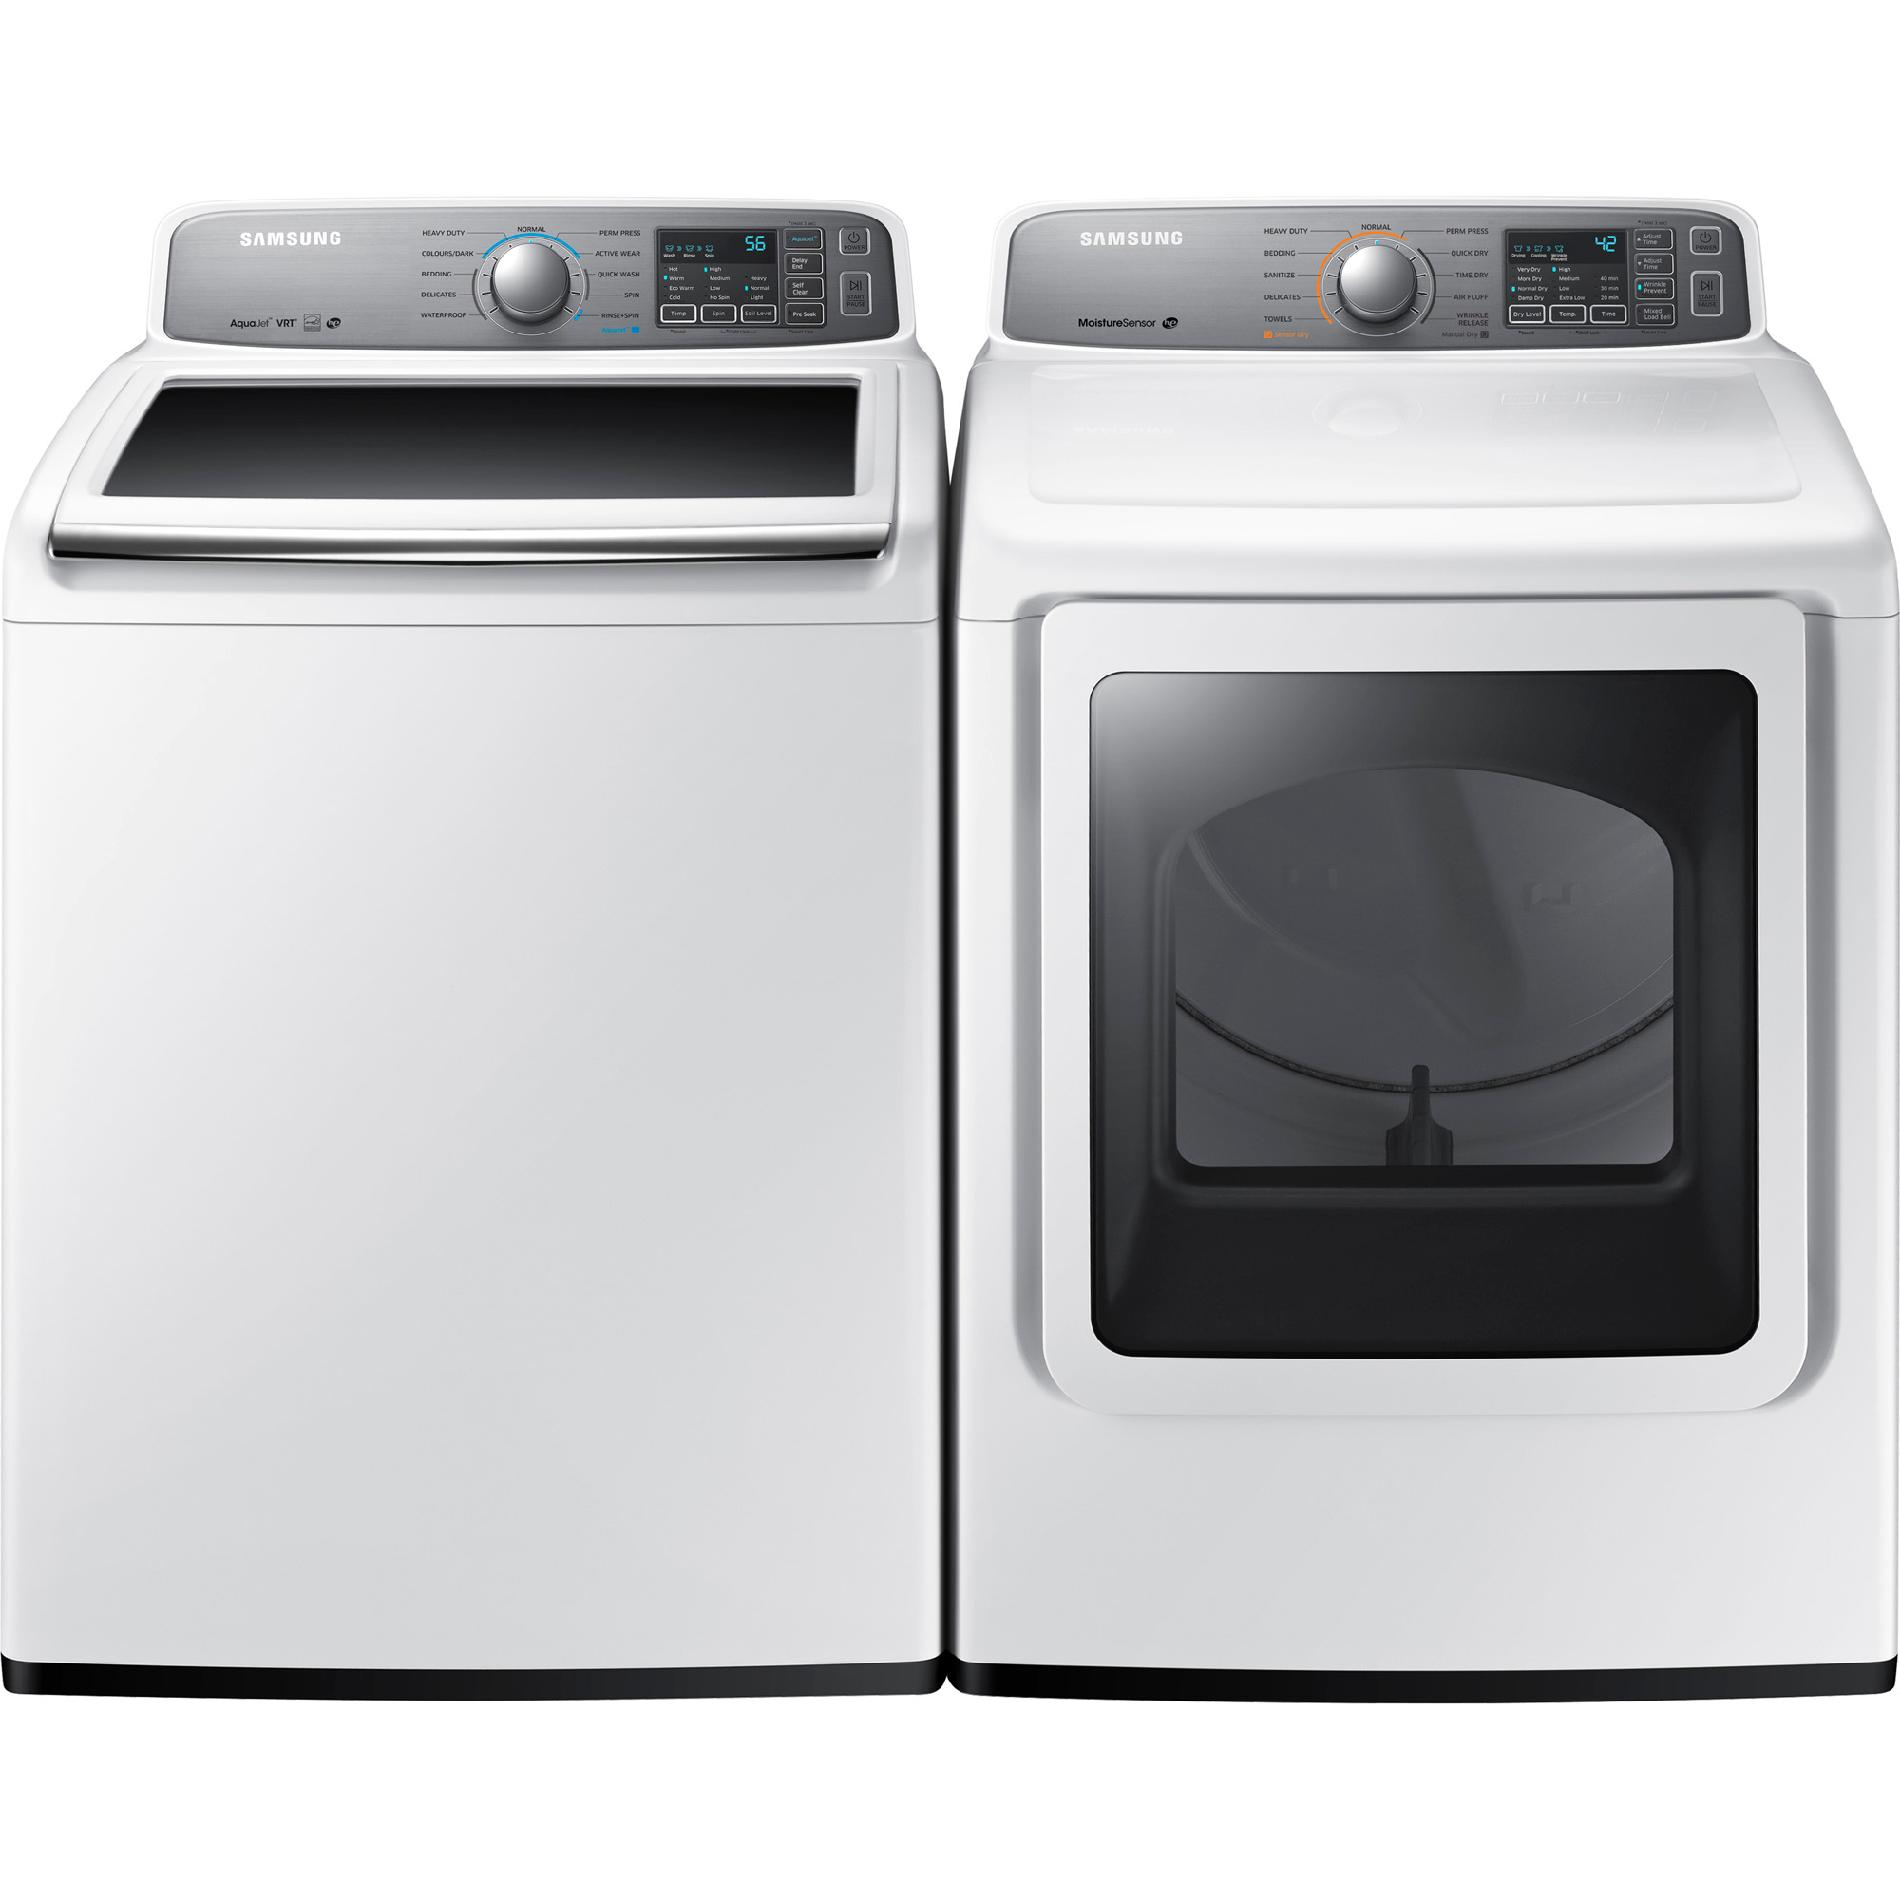 Samsung 7.4 cu. ft. Electric Dryer - White